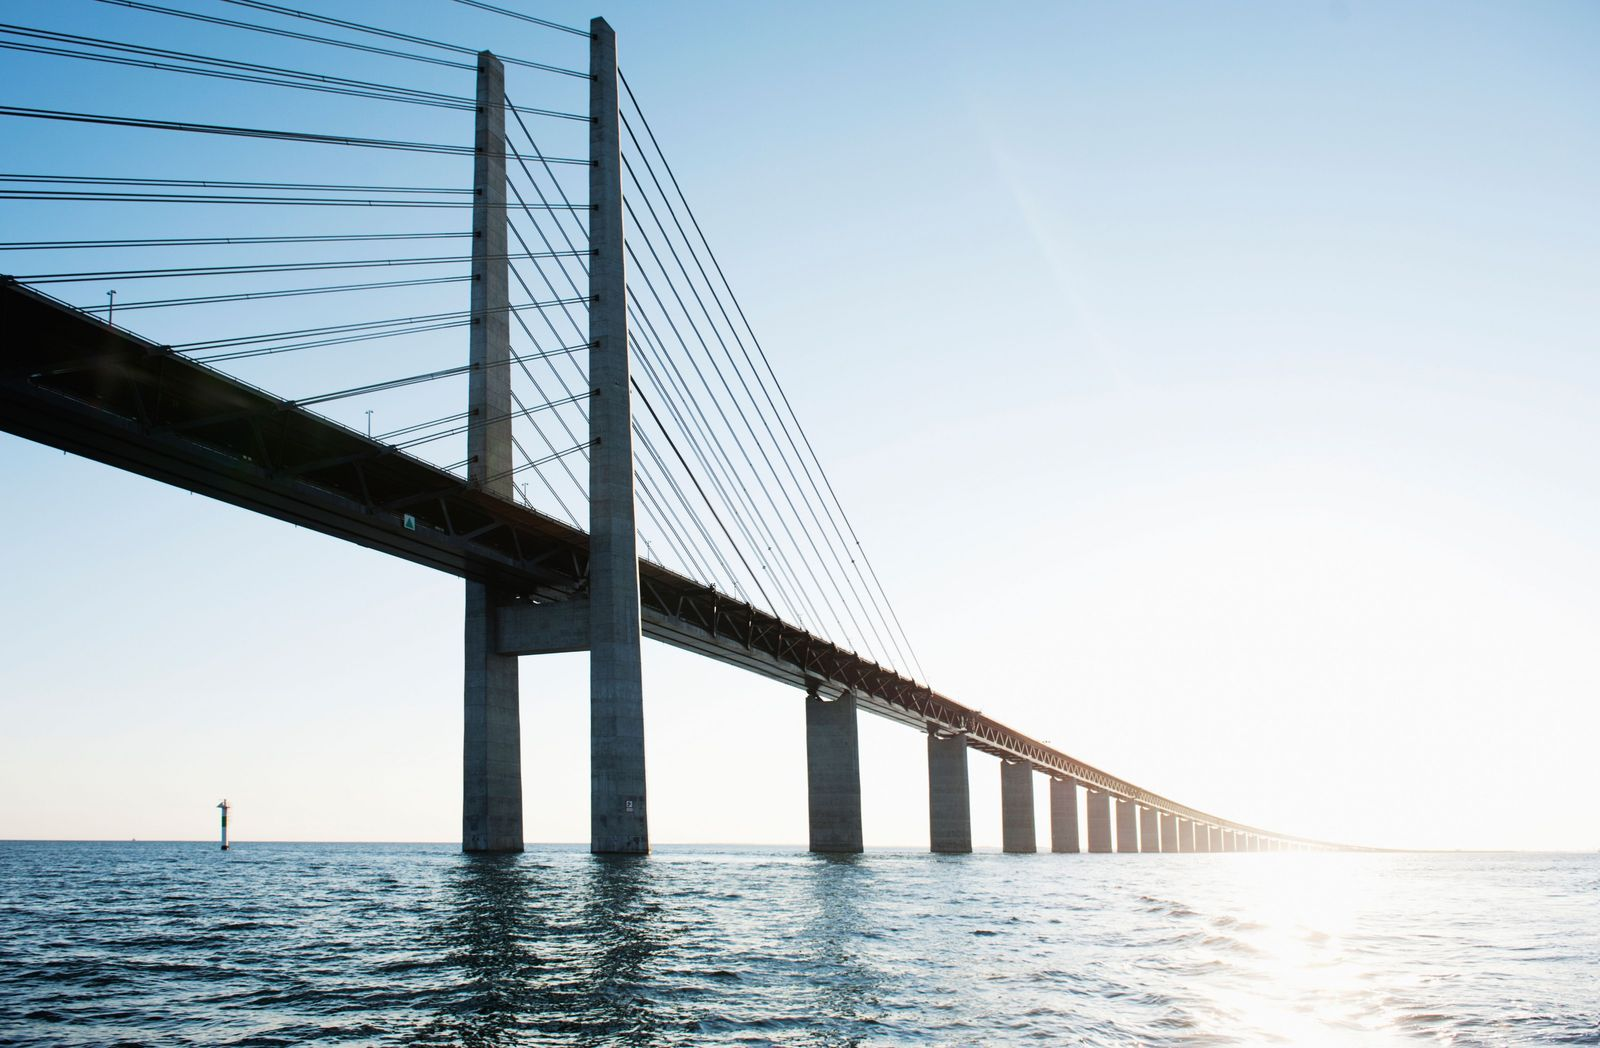 A bridge between Scotland and Northern Ireland: what would it be like?